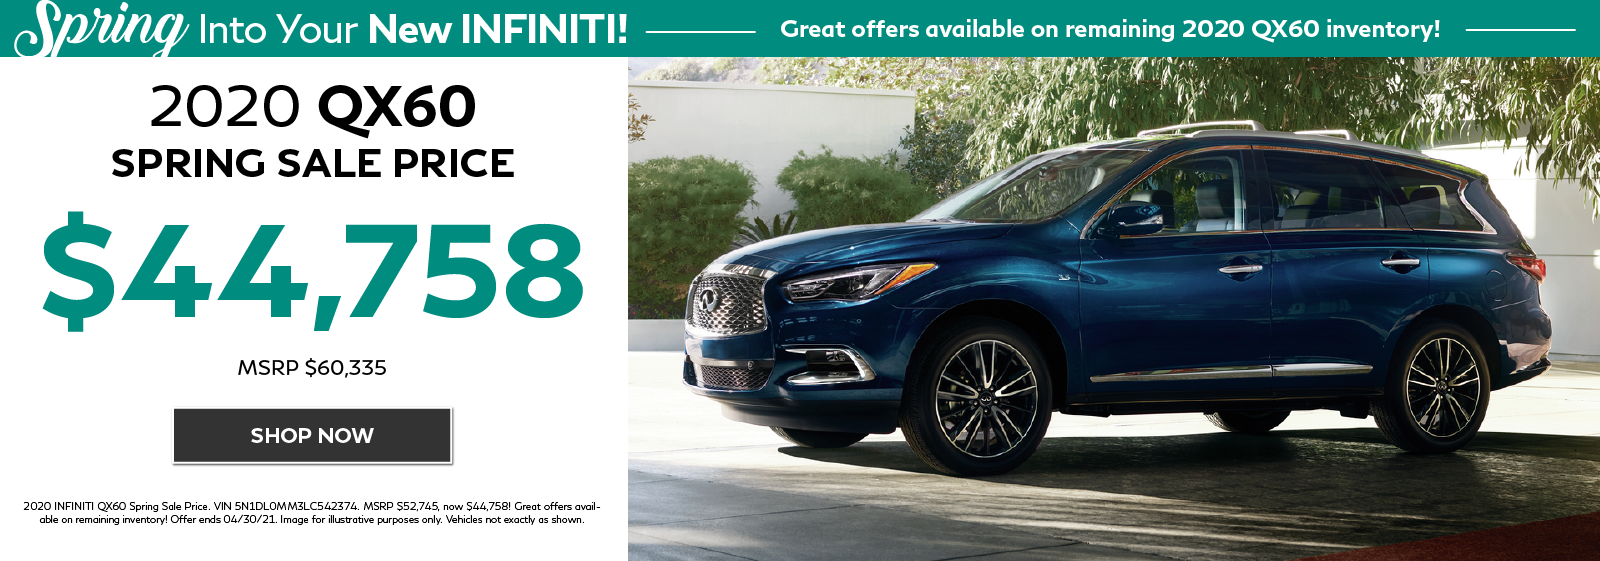 2020 QX60 Special Spring Price Offers. Click to see inventory on special.